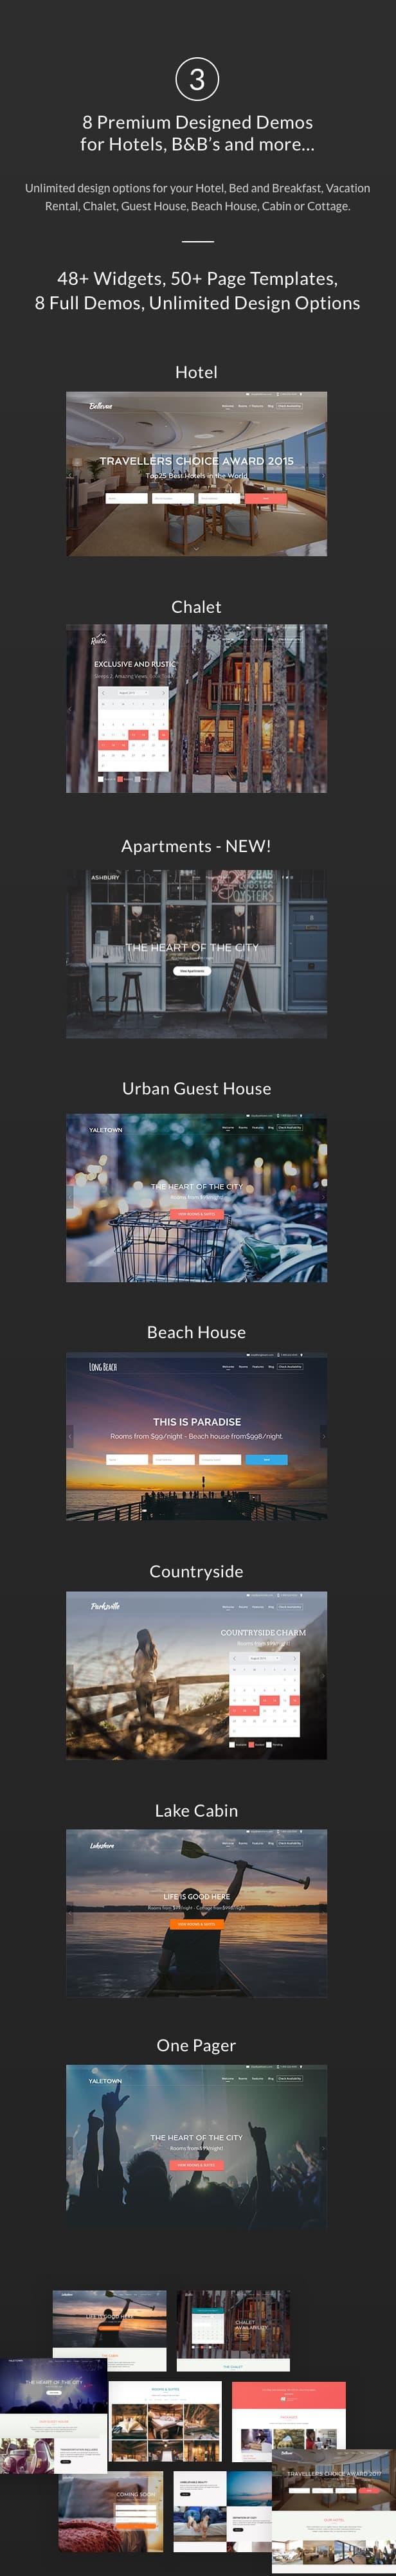 Hotel + Bed and Breakfast Booking Calendar Theme | Bellevue - 4